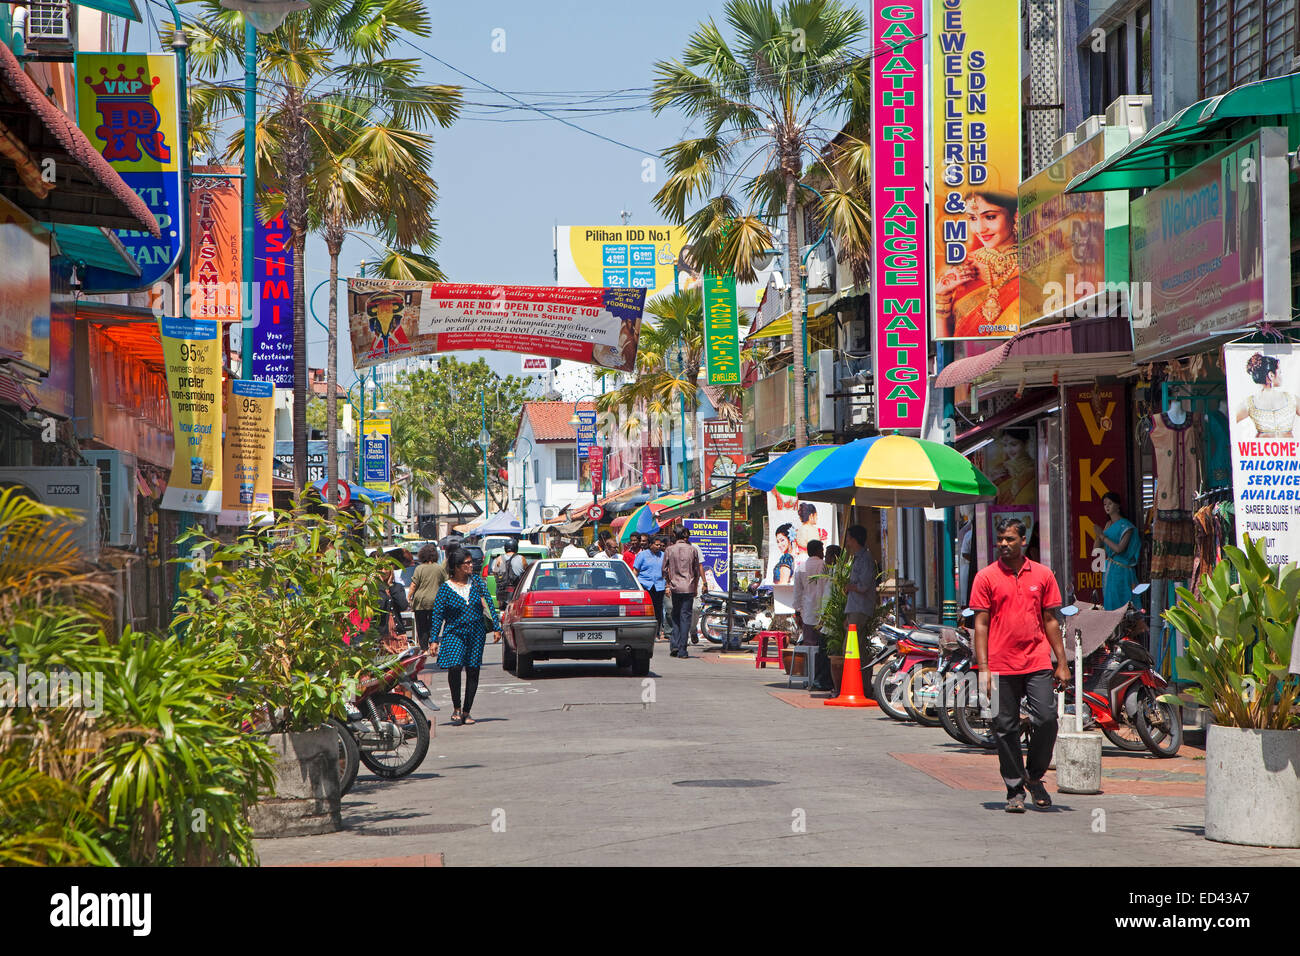 Colourful signboards in shopping street in Little India, ethnic Indian enclave in George Town / Georgetown, Penang, - Stock Image